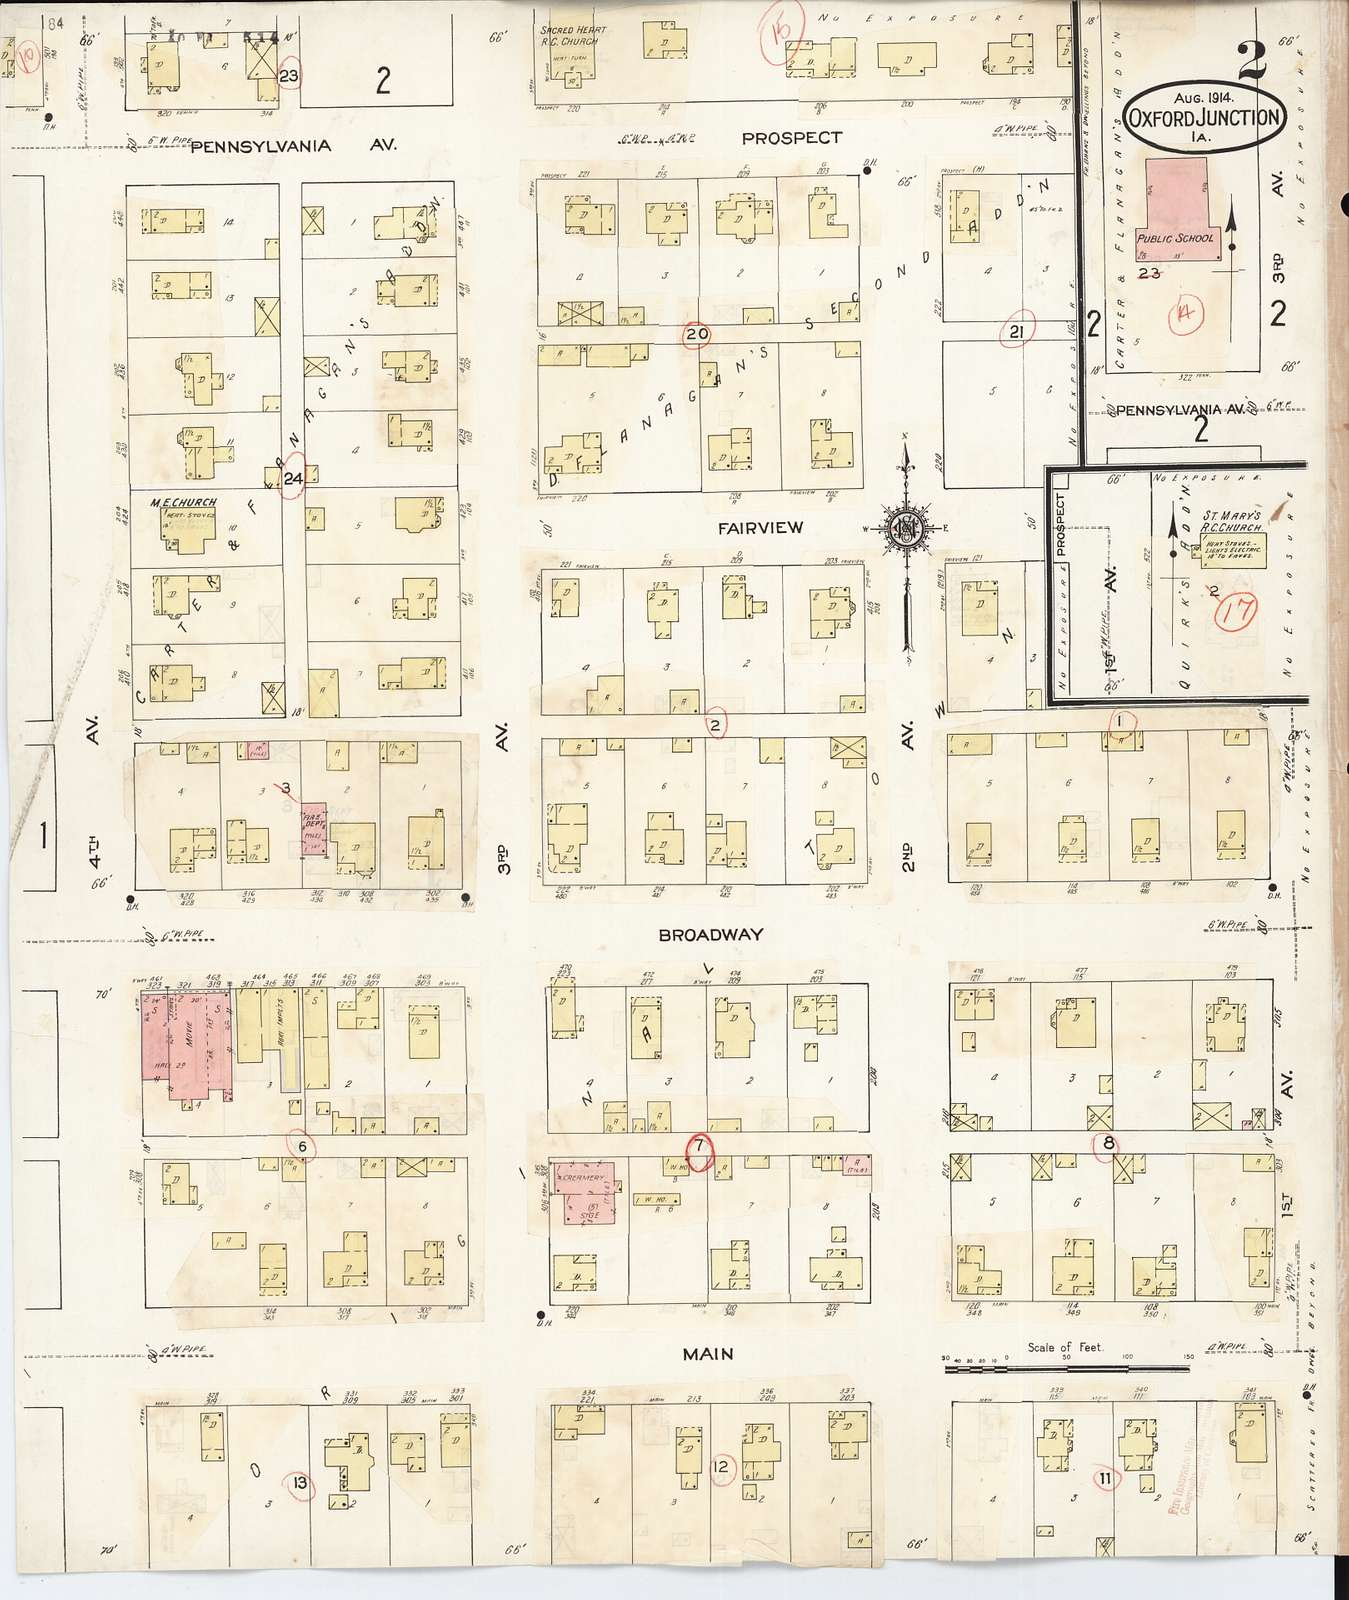 Sanborn Fire Insurance Map from Oxford Junction, James County, Iowa